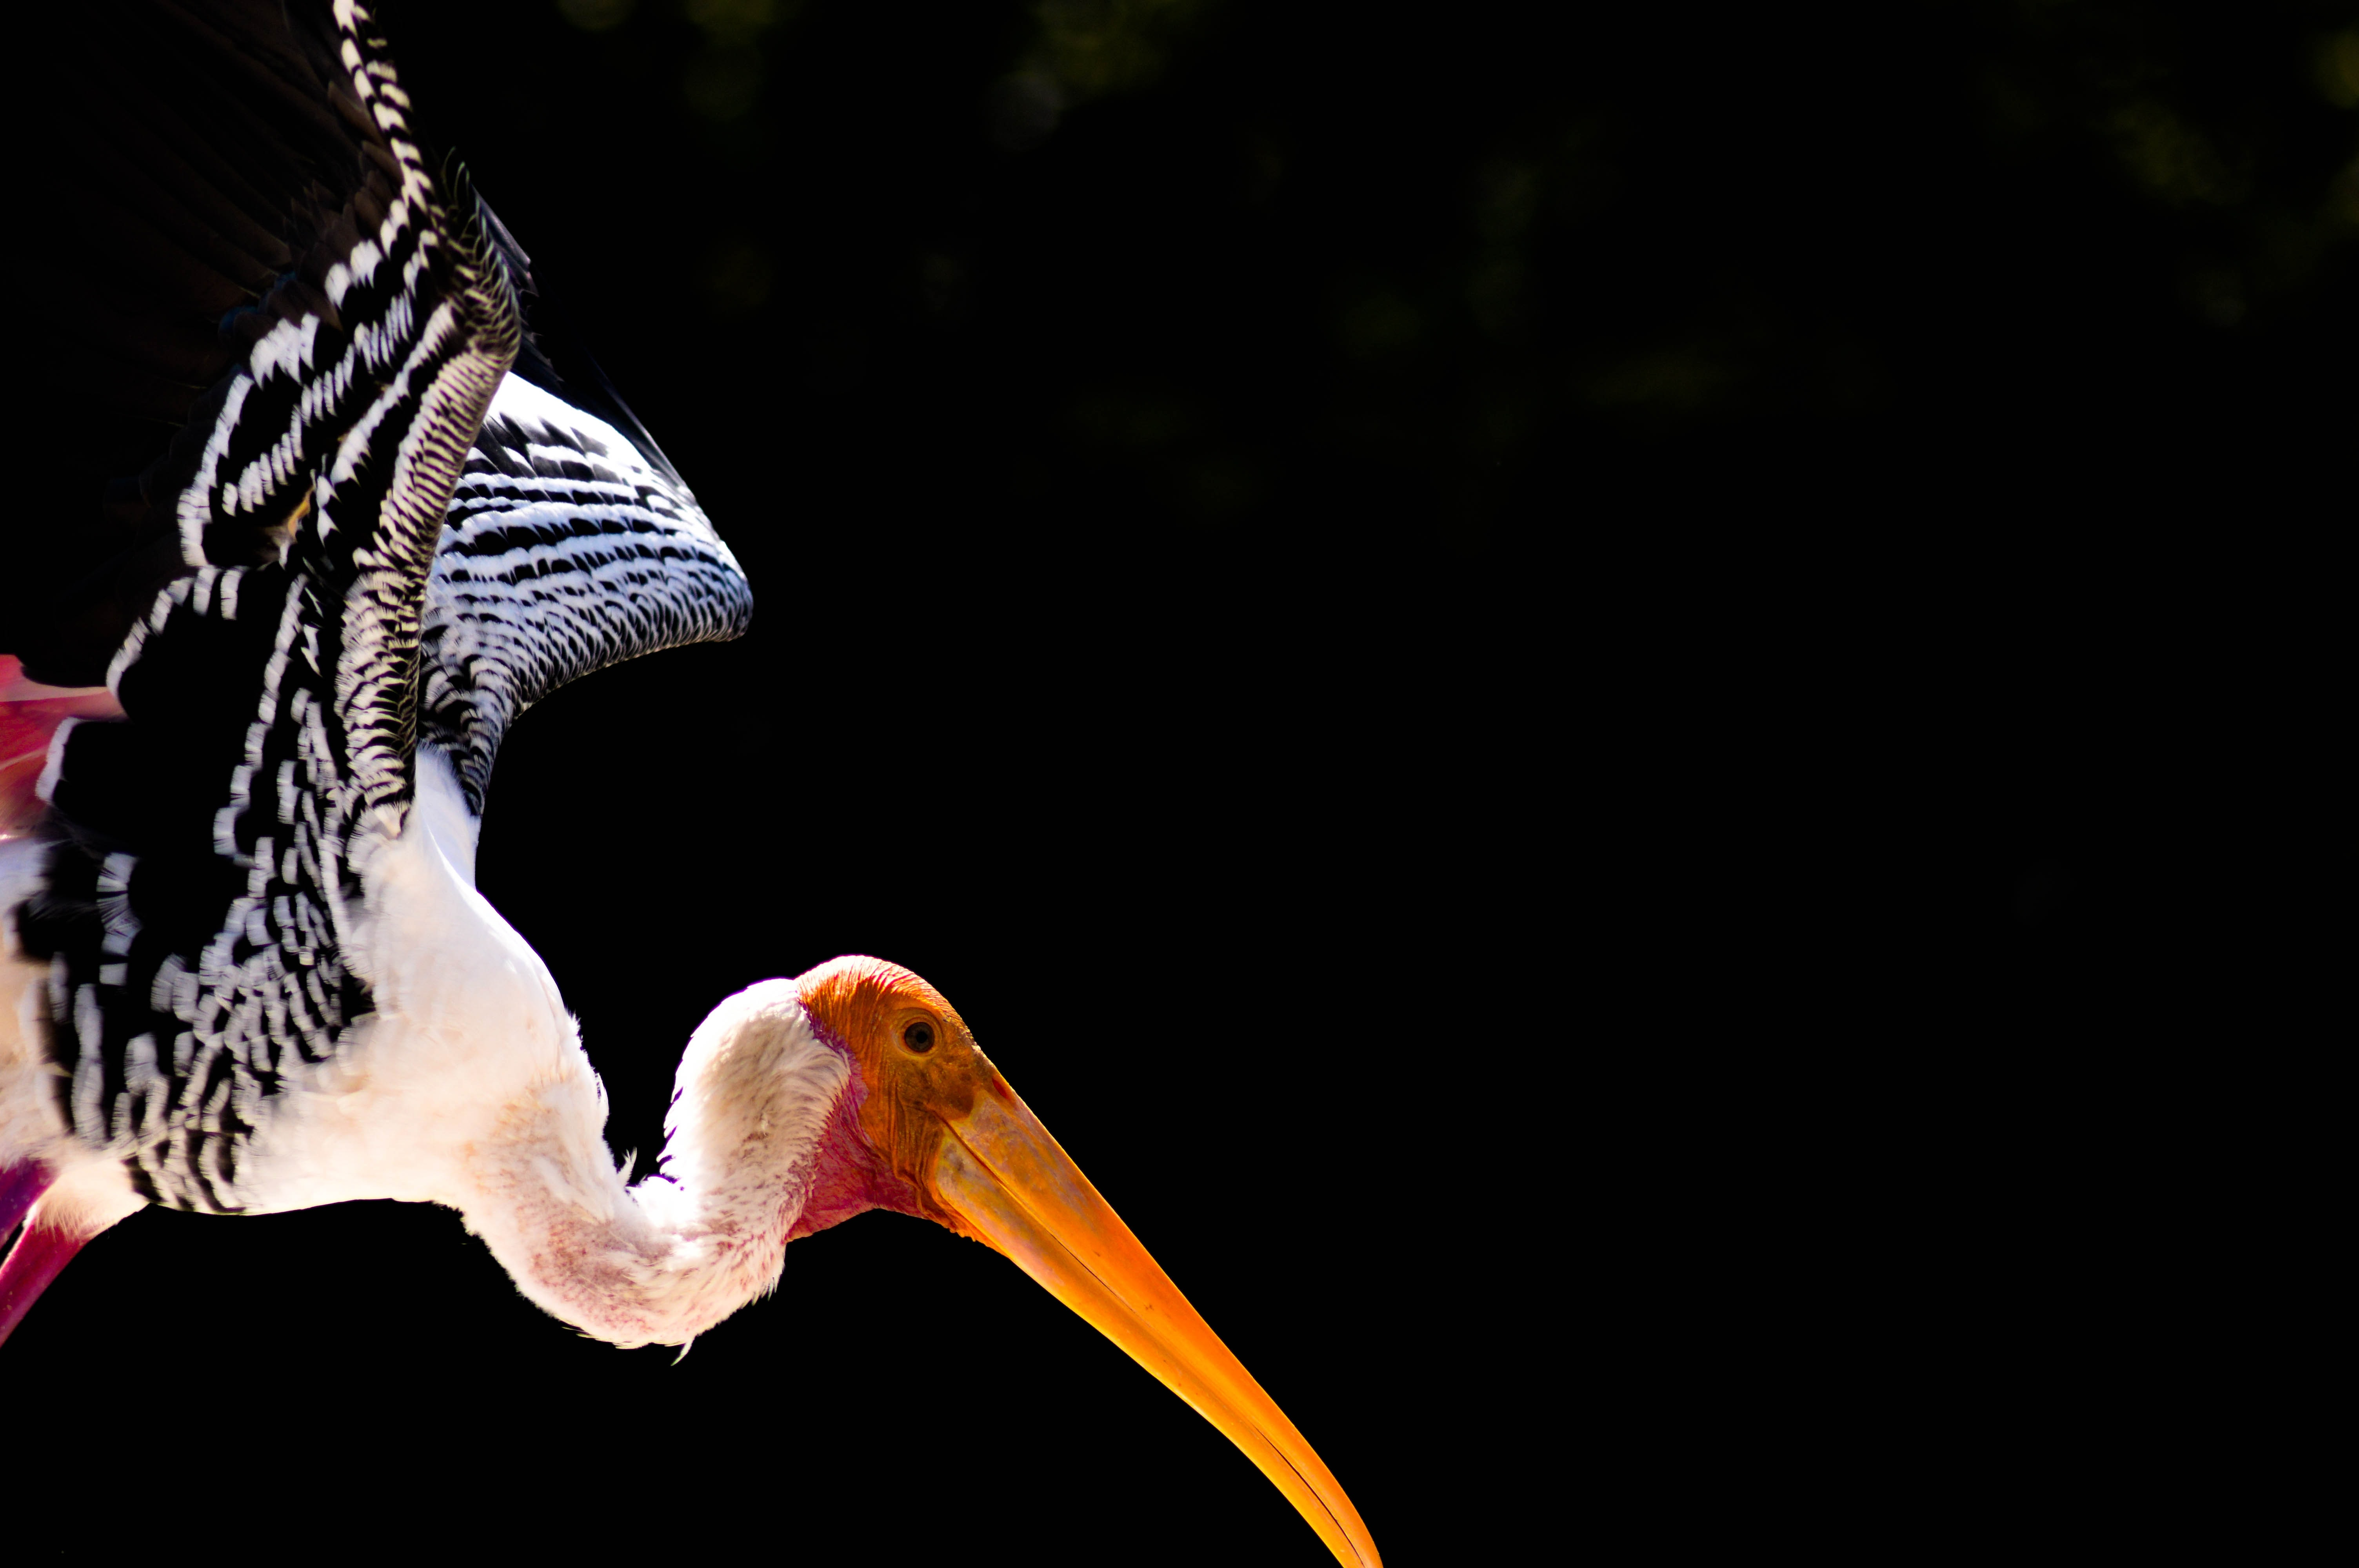 Stork spreads its wings to fly in the wild